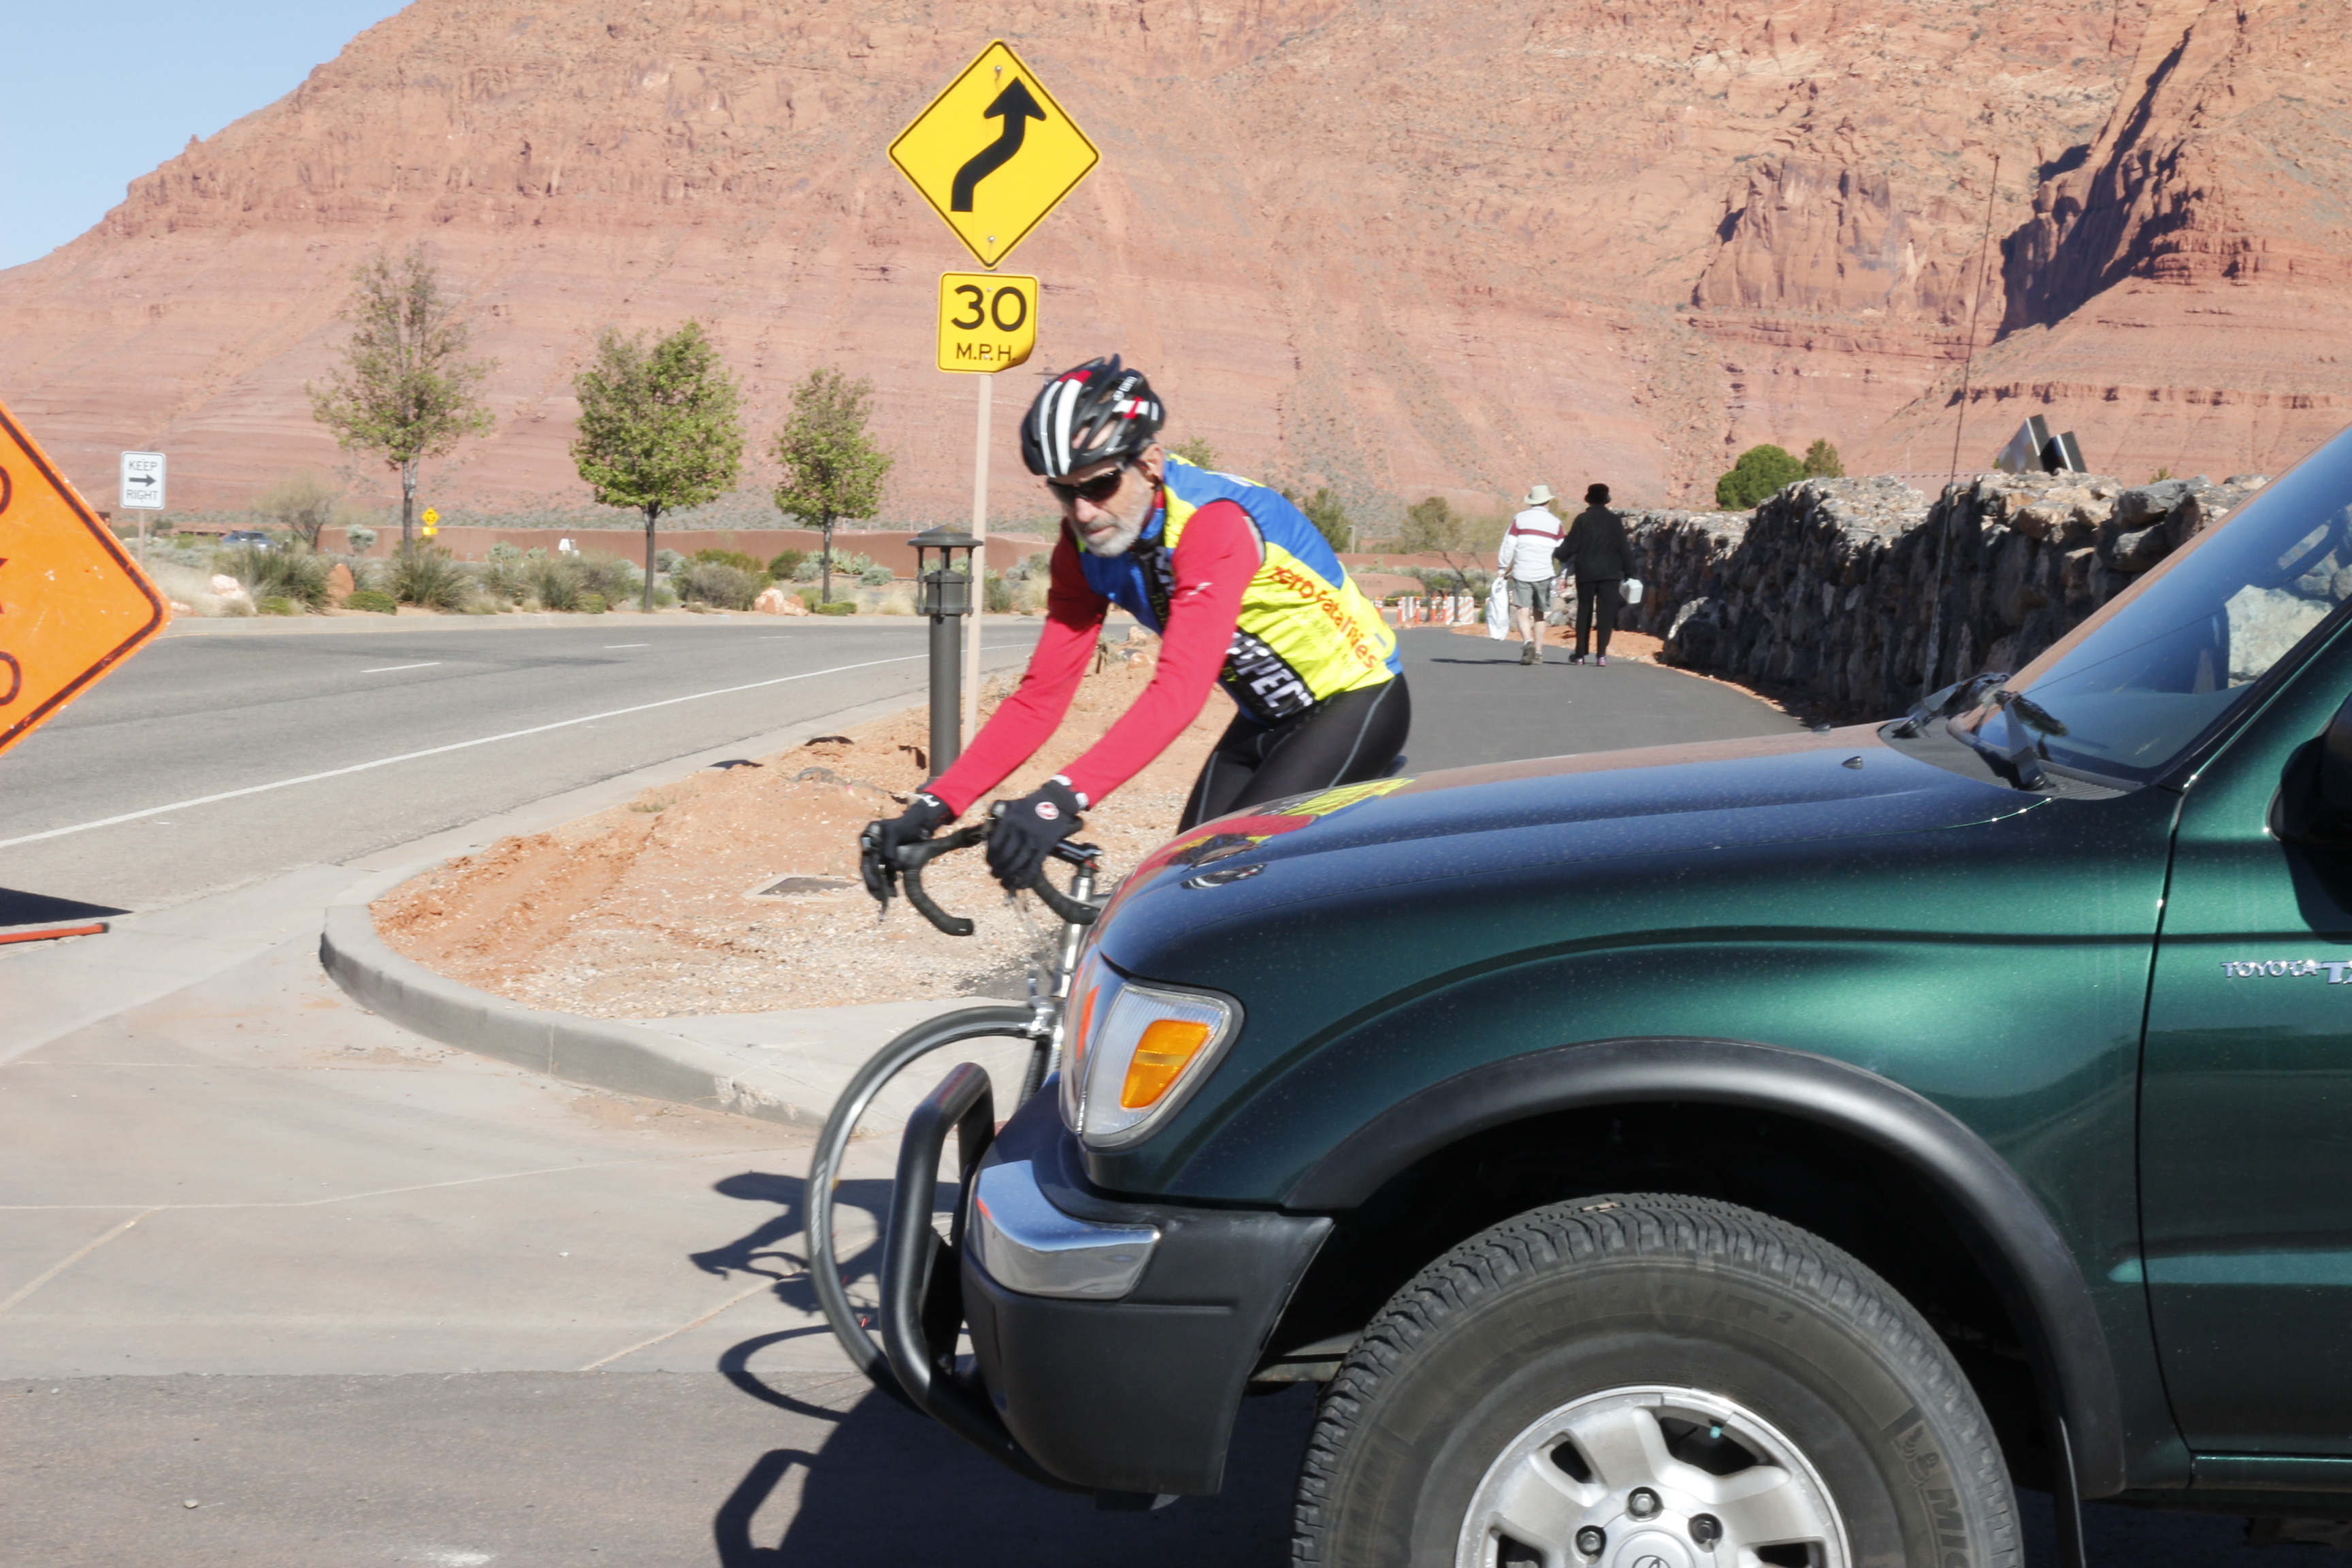 One of the most common kinds of car-bike accidents is a  collision between a motorist pulling out of a driveway or side street and a cyclist riding across it on a multiuse path or sidewalk. To prevent such an accident, motorists and cyclists should look out for the other at such intersections, establishing eye contact and clear intentions, Ivins, Utah, date not specified | Photo by Tim Tabor, St. George News